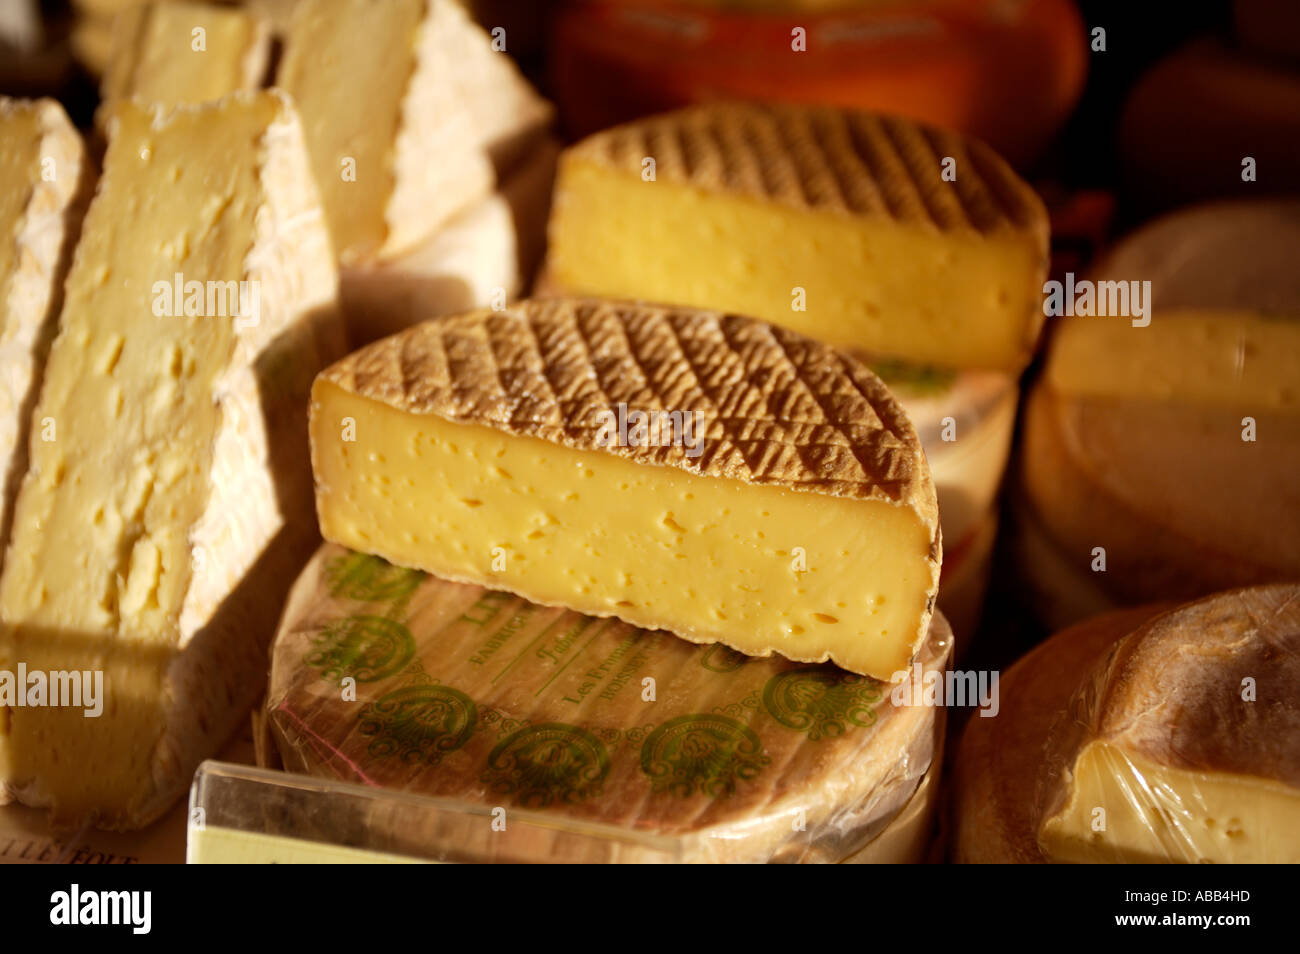 Paris, Market, French Soft Cheese Stock Photo